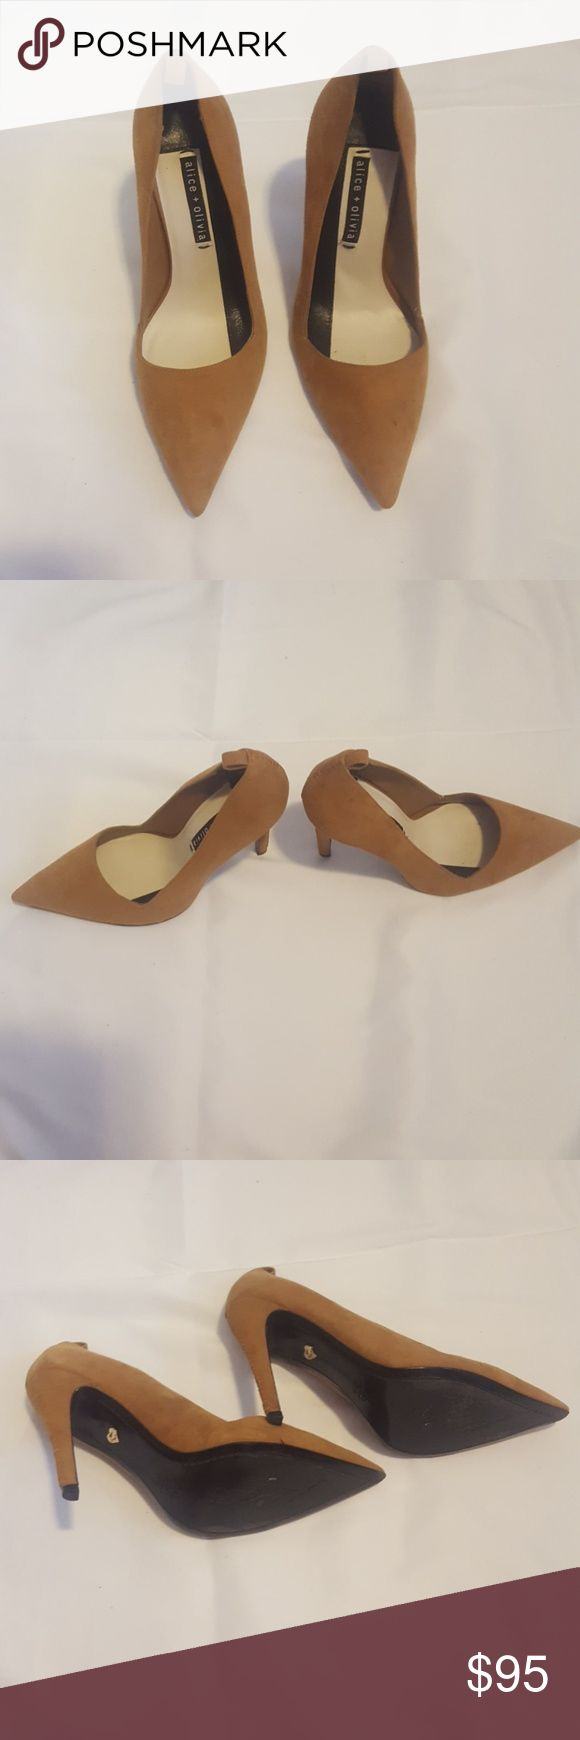 Alice + Olivia suede camel pump Tan camel colored heel from Alice and Olivia. Pointed toe. 4 inch heel. Very light wear. Alice & Olivia Shoes Heels